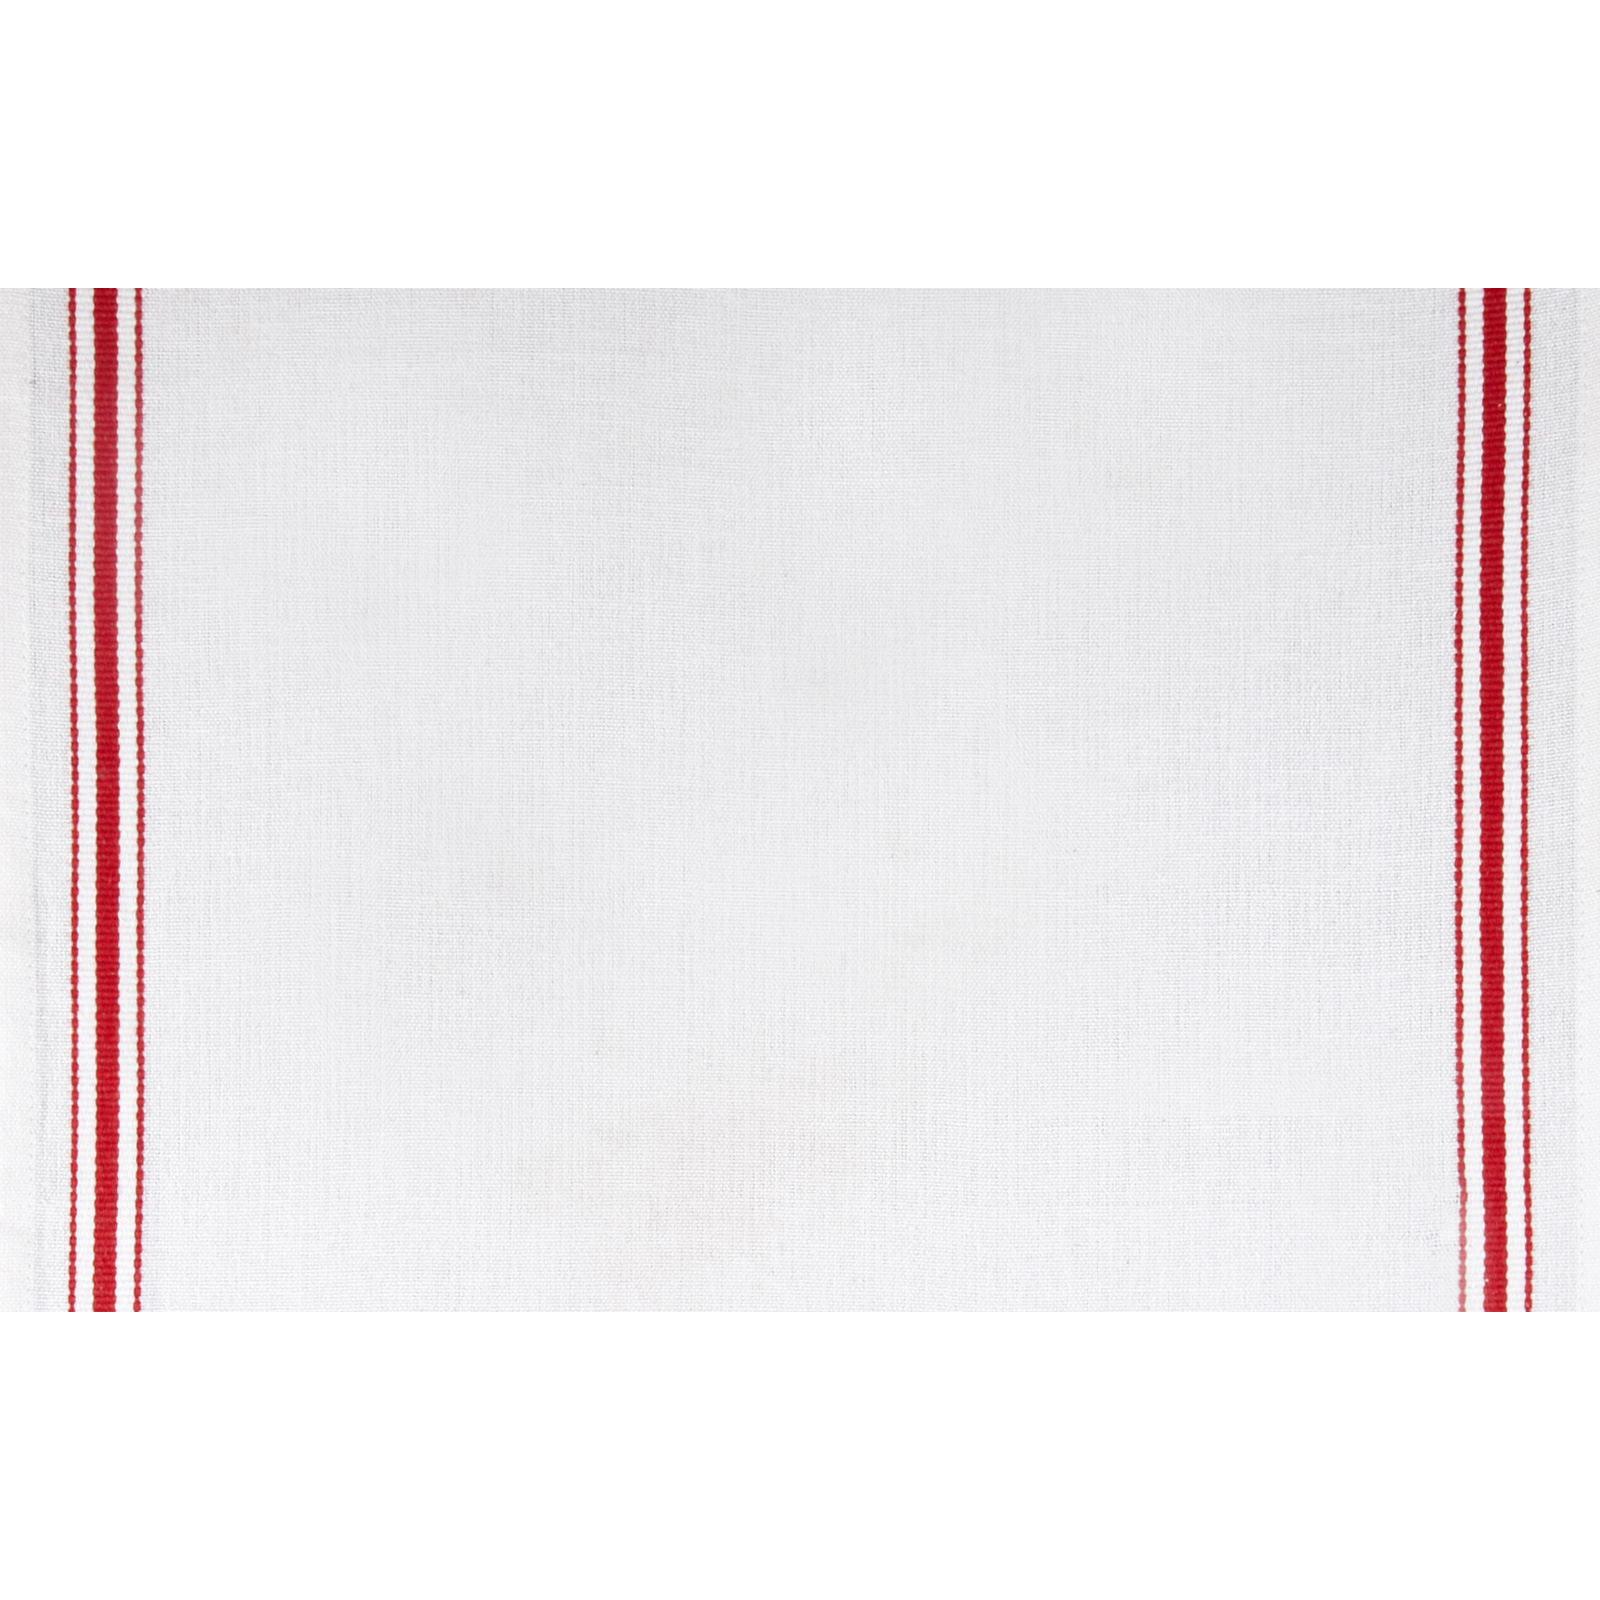 Moda Toweling Christmas Stripe White/Red Fabric By The Yard